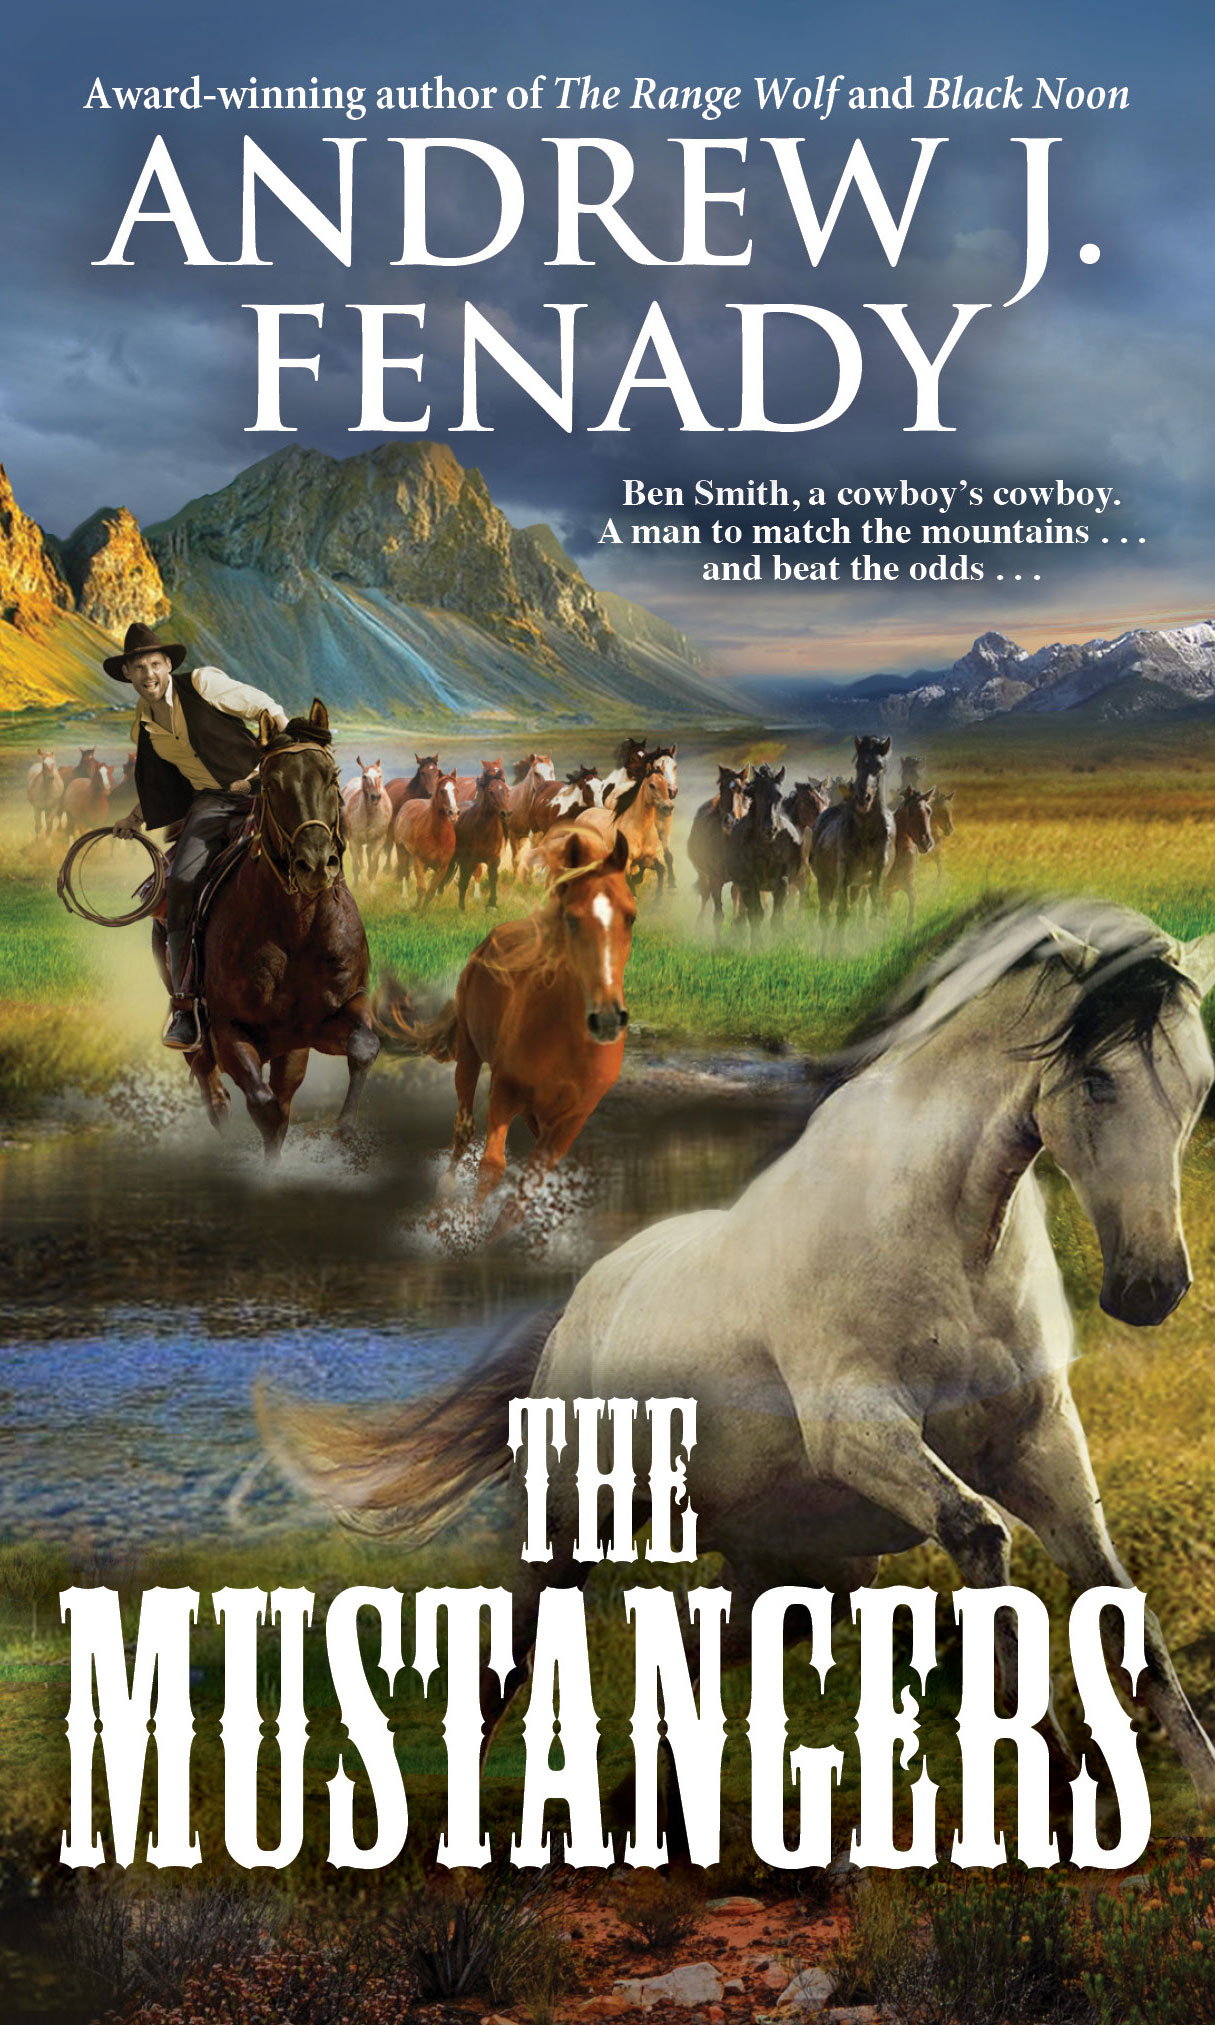 THE MUSTANGERS by Andrew J. Fenady